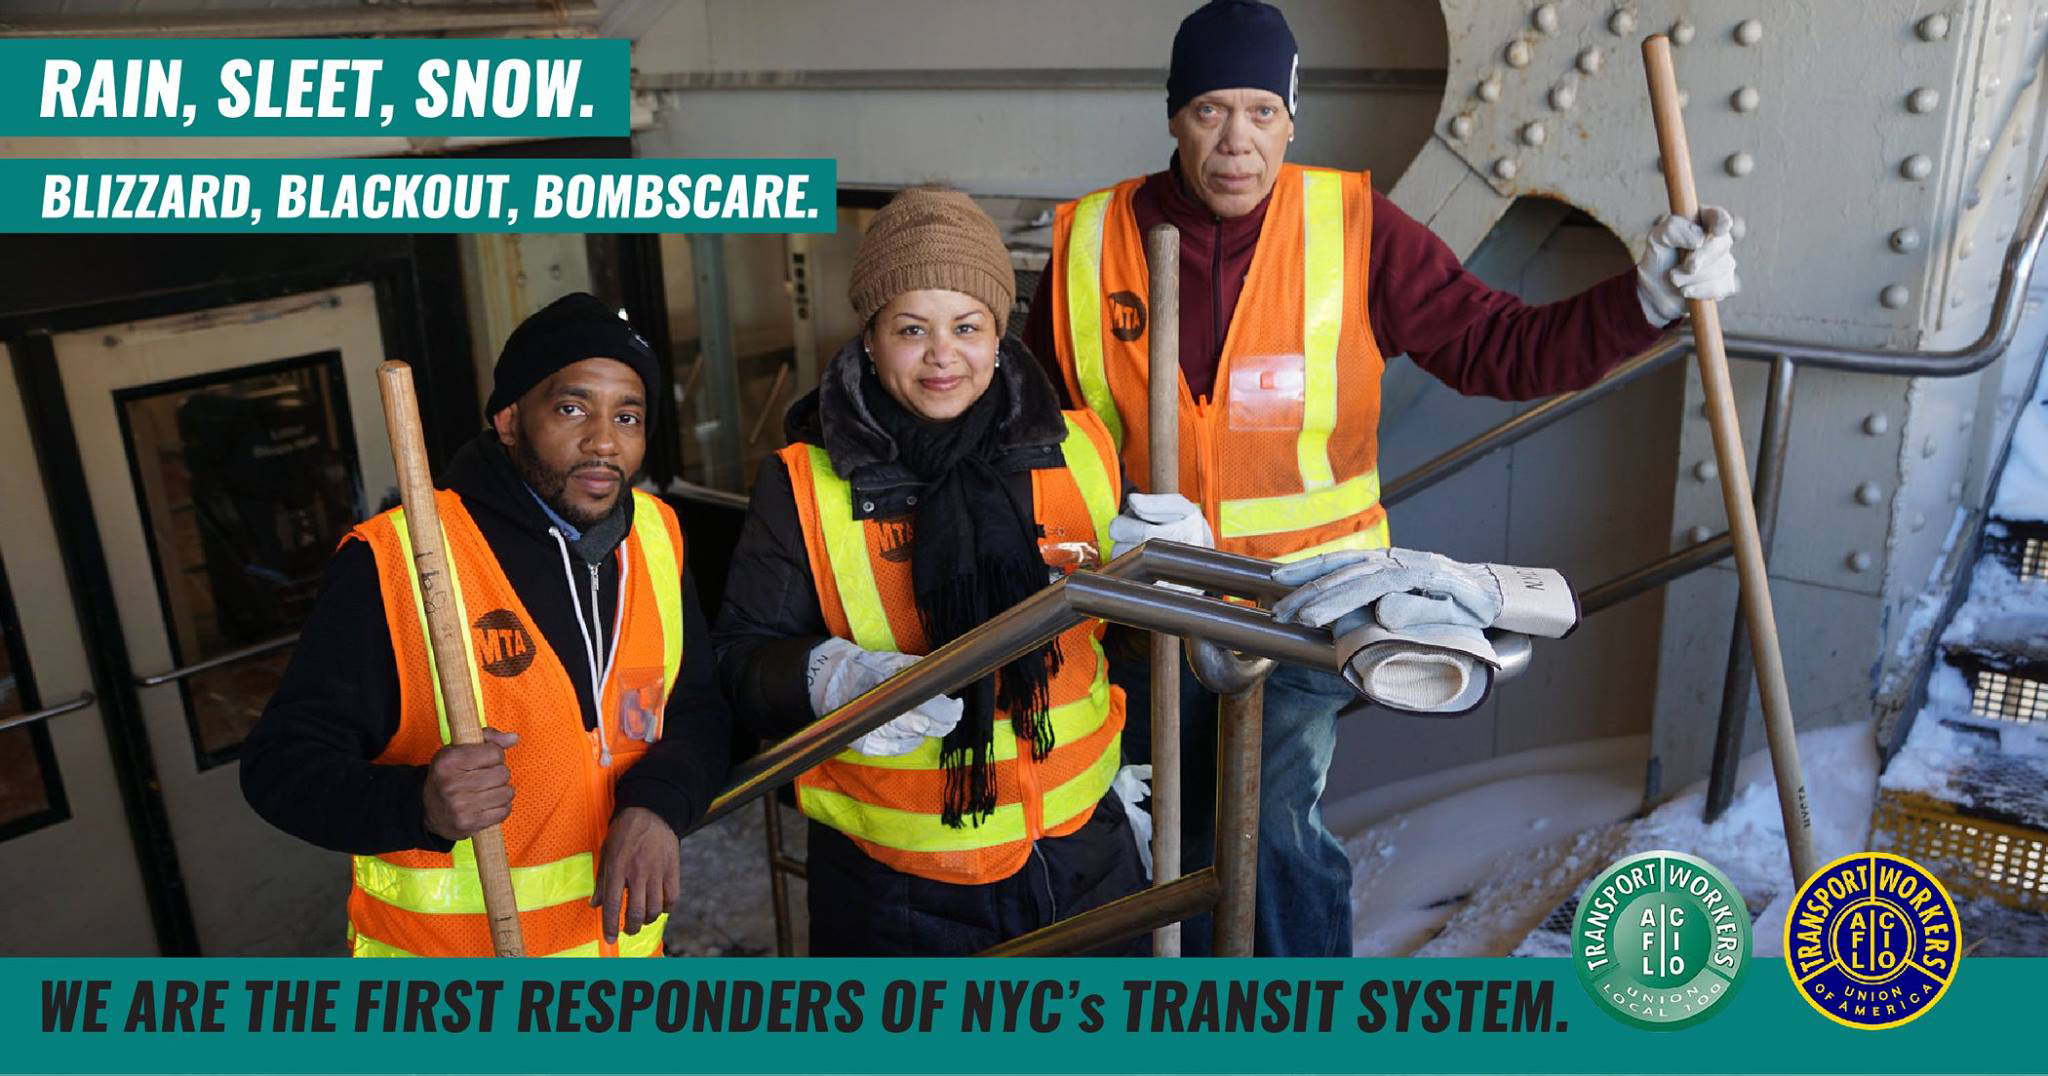 The union represents approximately 38,000 MTA employees.